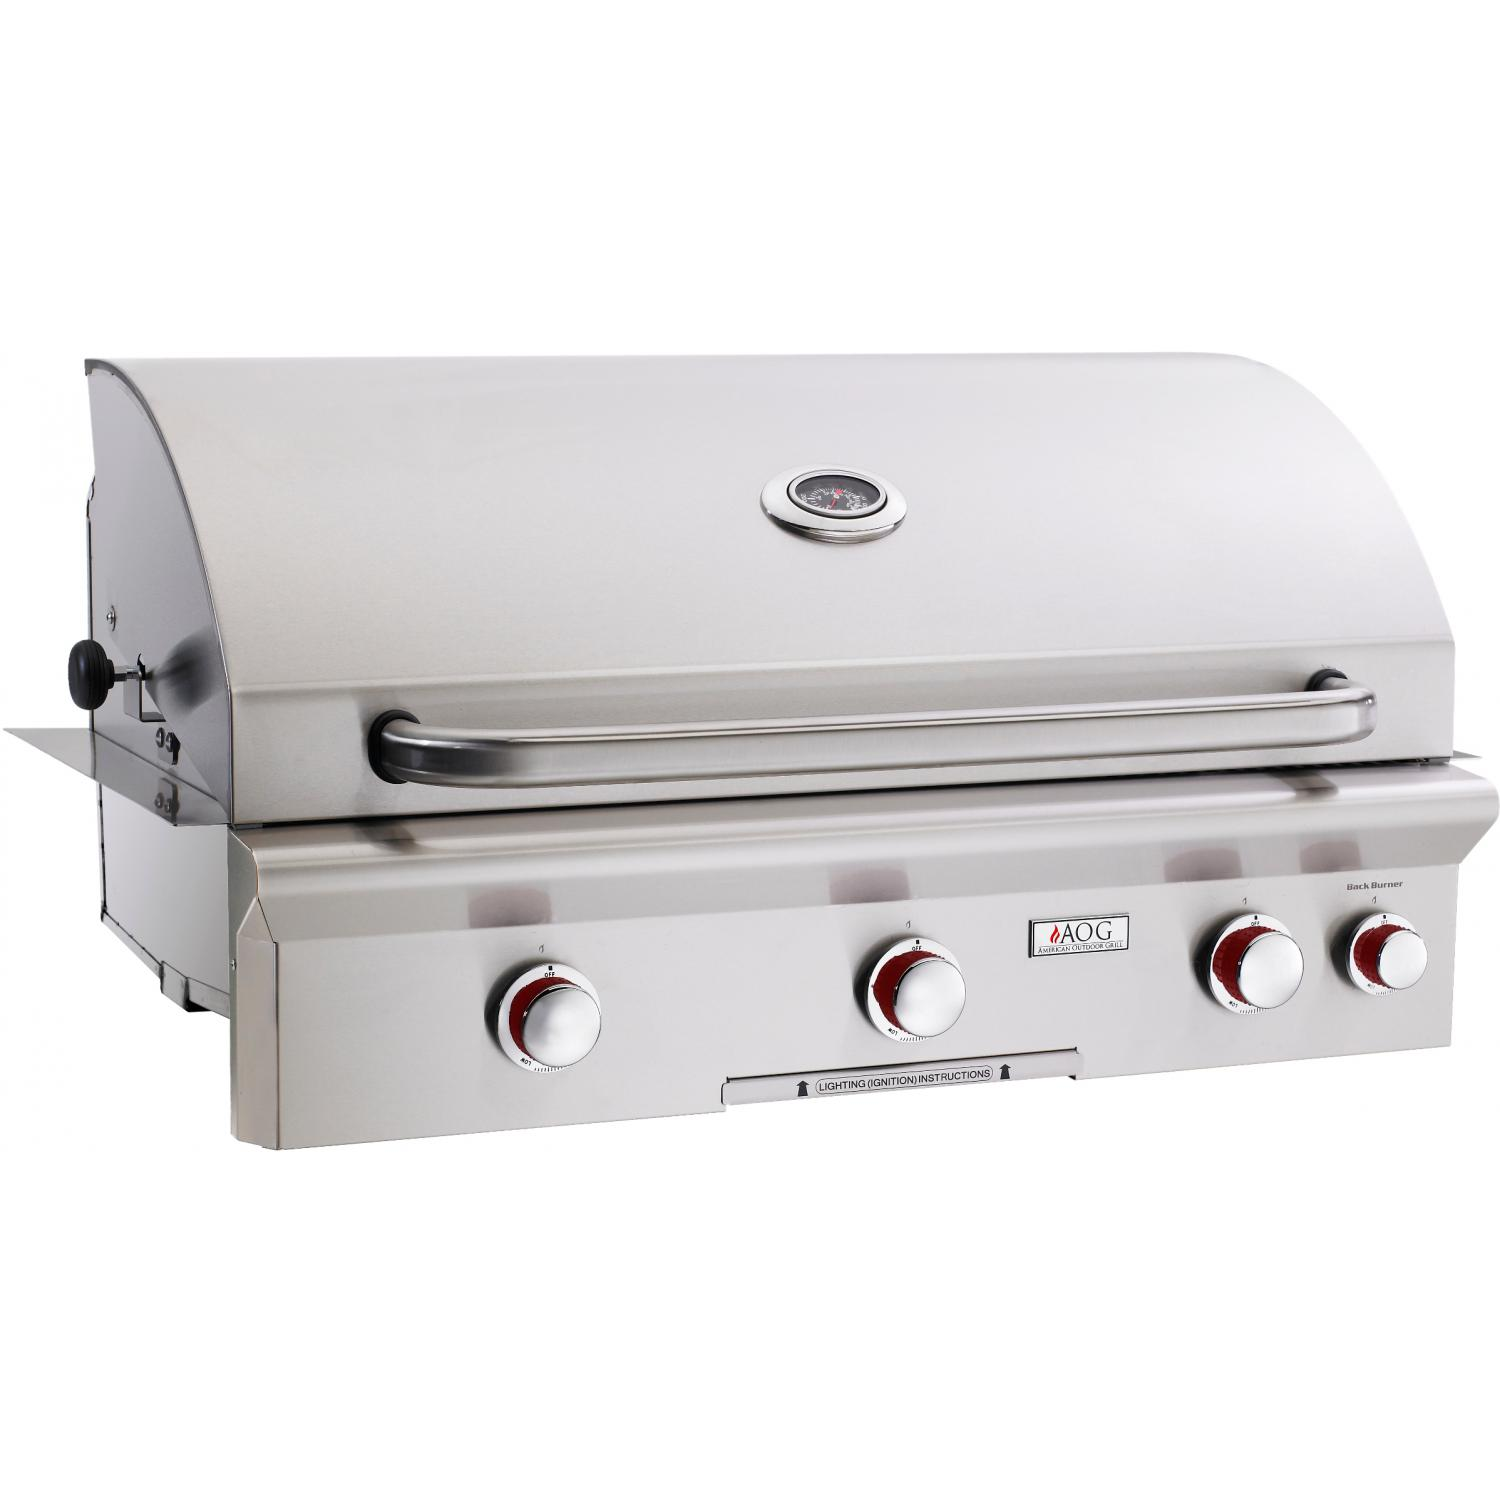 American Outdoor Grill T-Series 36-Inch Built-In Natural Gas Grill With Rotisserie 2894406